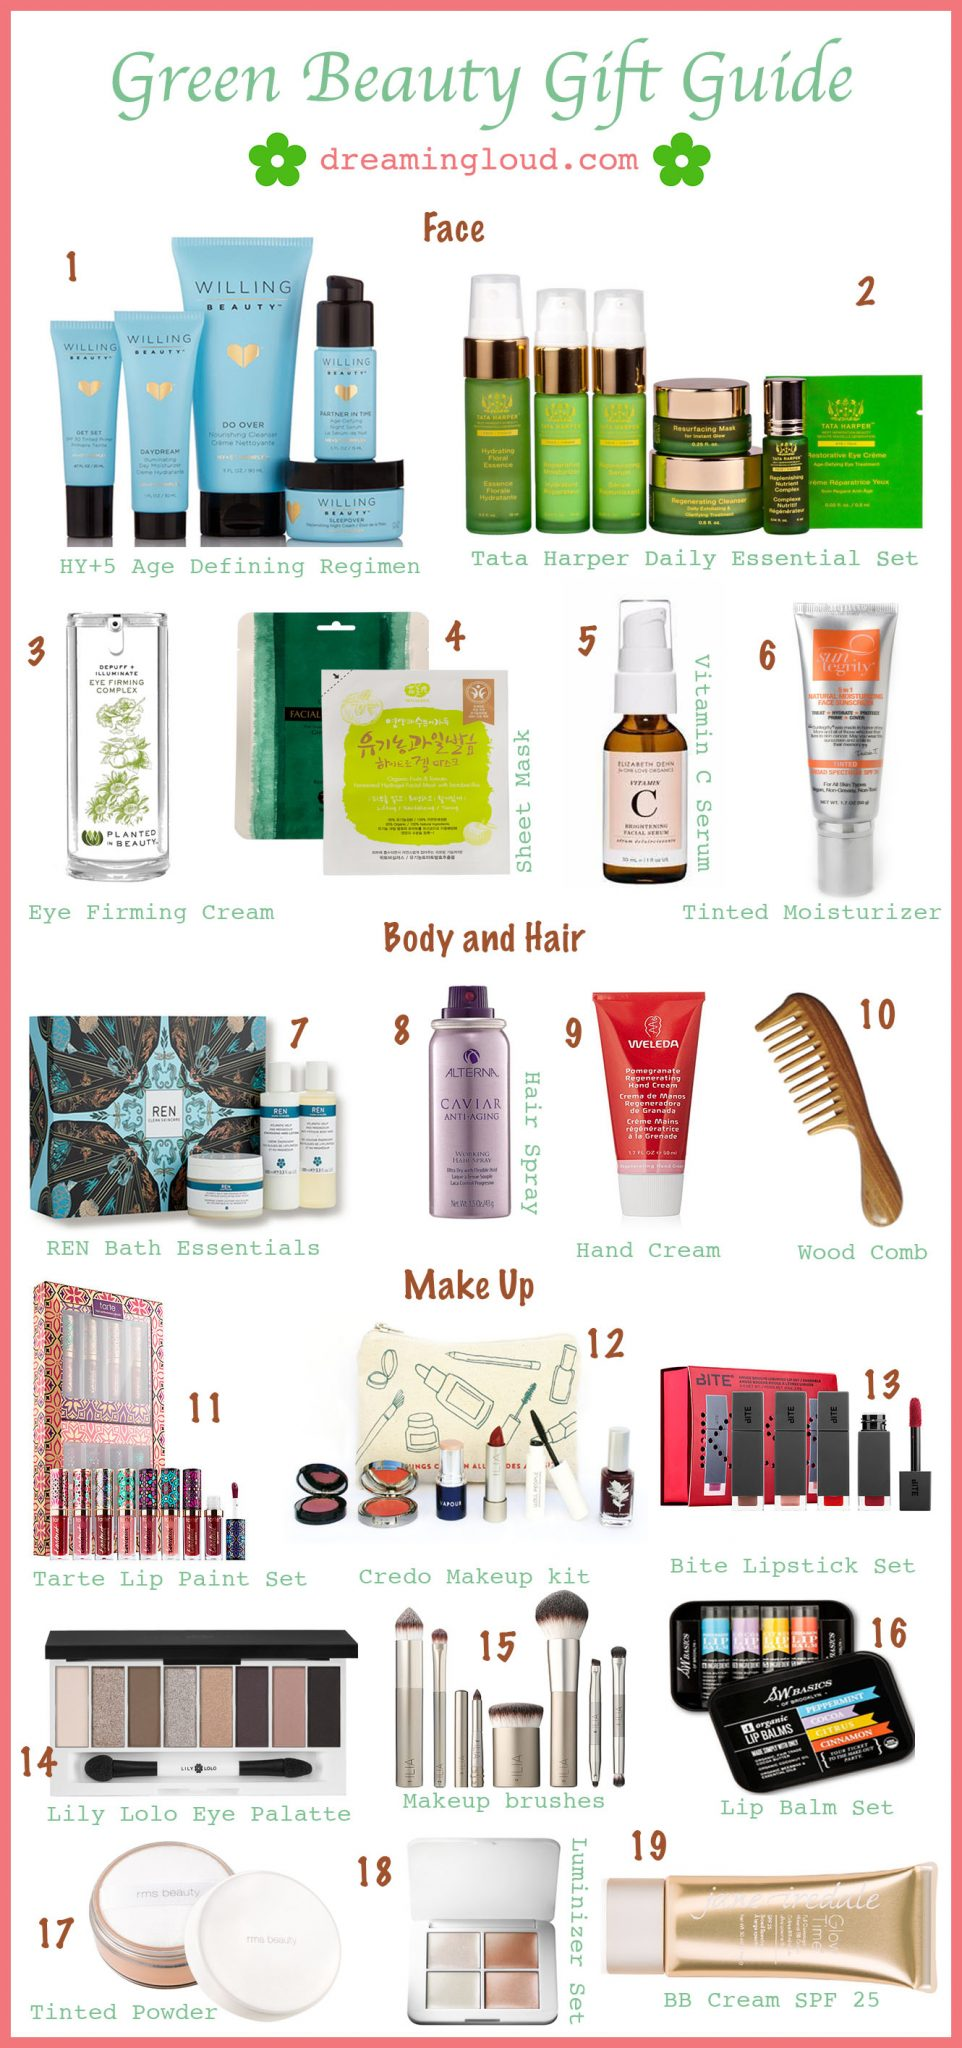 Lifestyle Blog Dreaming Loud Sharing Natural or green beauty gift guide 2017 | Green Beauty Gift Ideas featured by top Ohio beauty blog Dreaming Loud